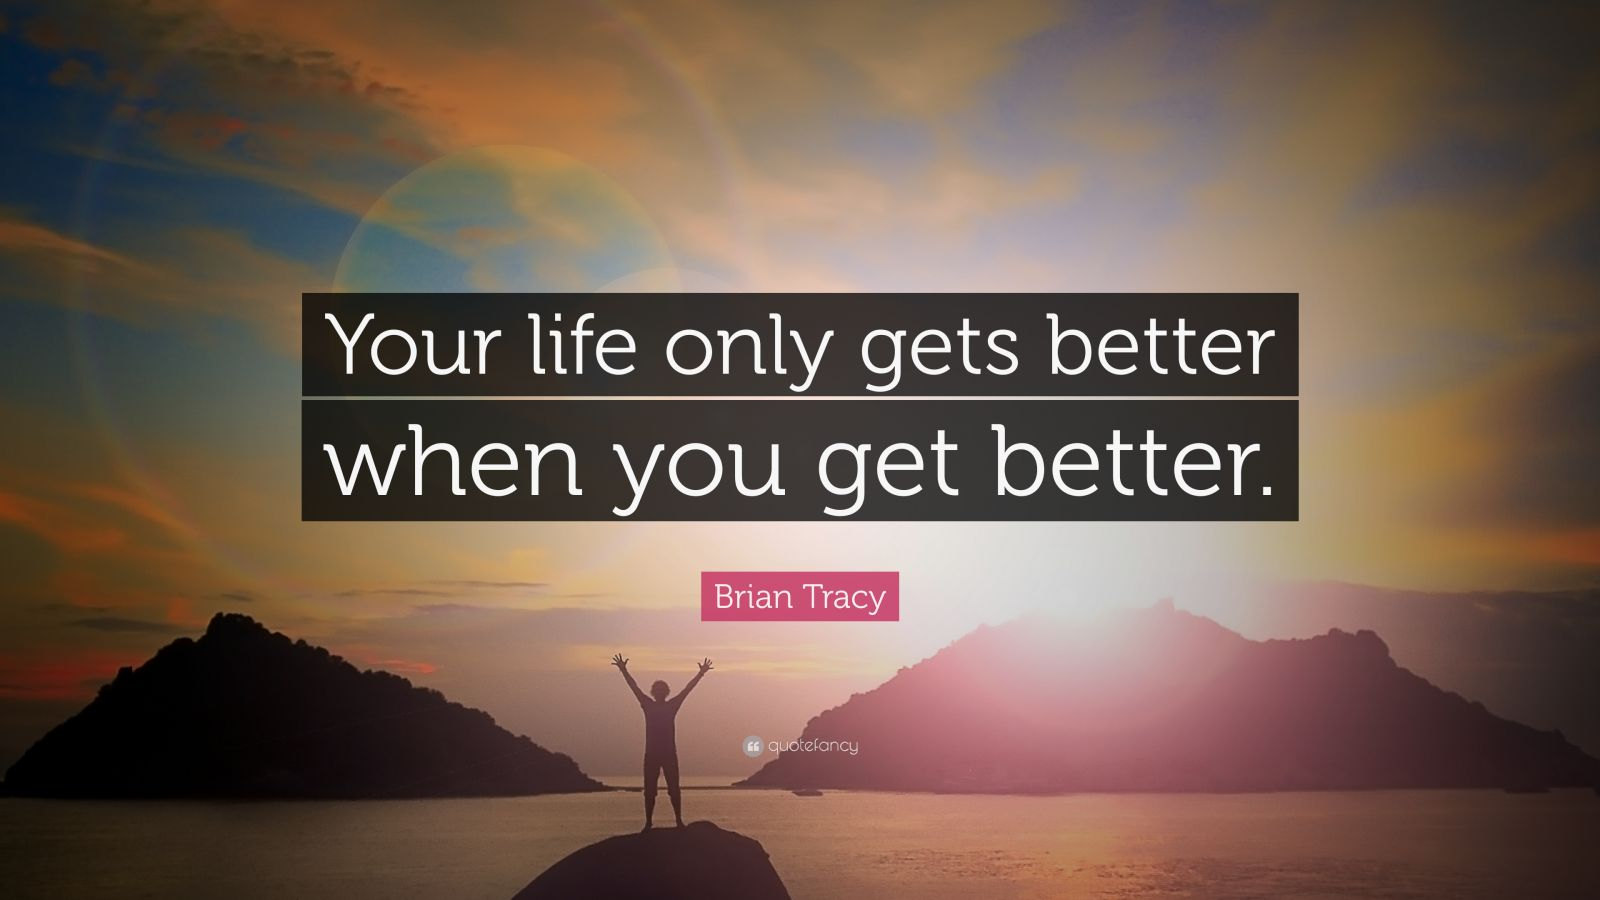 Brian Tracy Quotes  100 wallpapers    Quotefancy Brian Tracy Quote     Your life only gets better when you get better